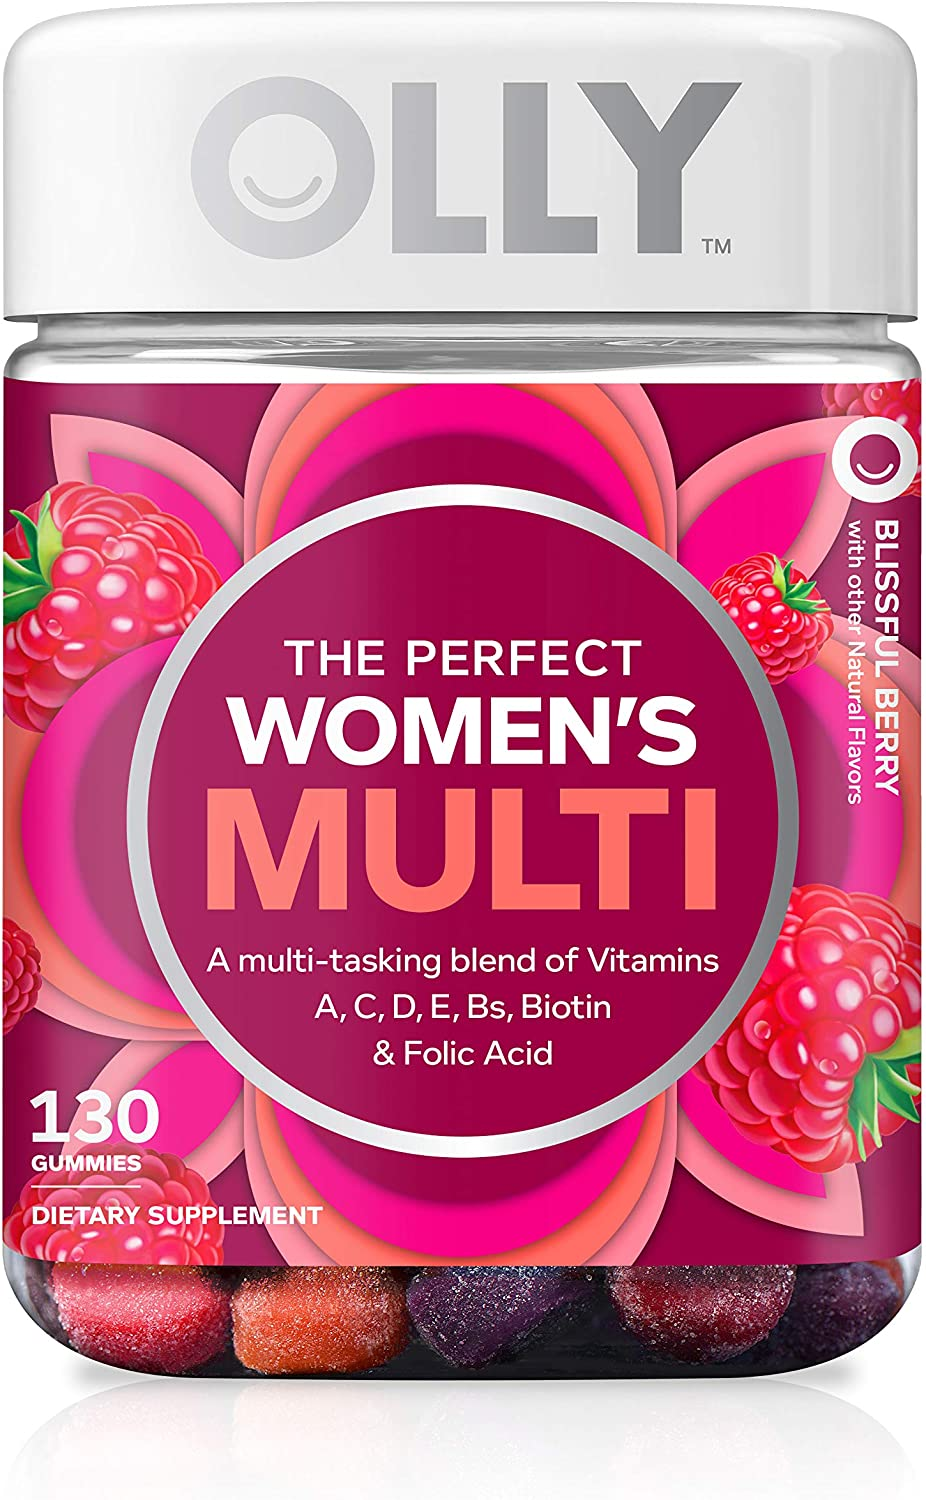 OLLY The Perfect Womens Gummy Multivitamin, 65 Day Supply 130 Gummies , Blissful Berry, Vitamins A, D, C, E, Biotin, Folic Acid, Chewable Supplement